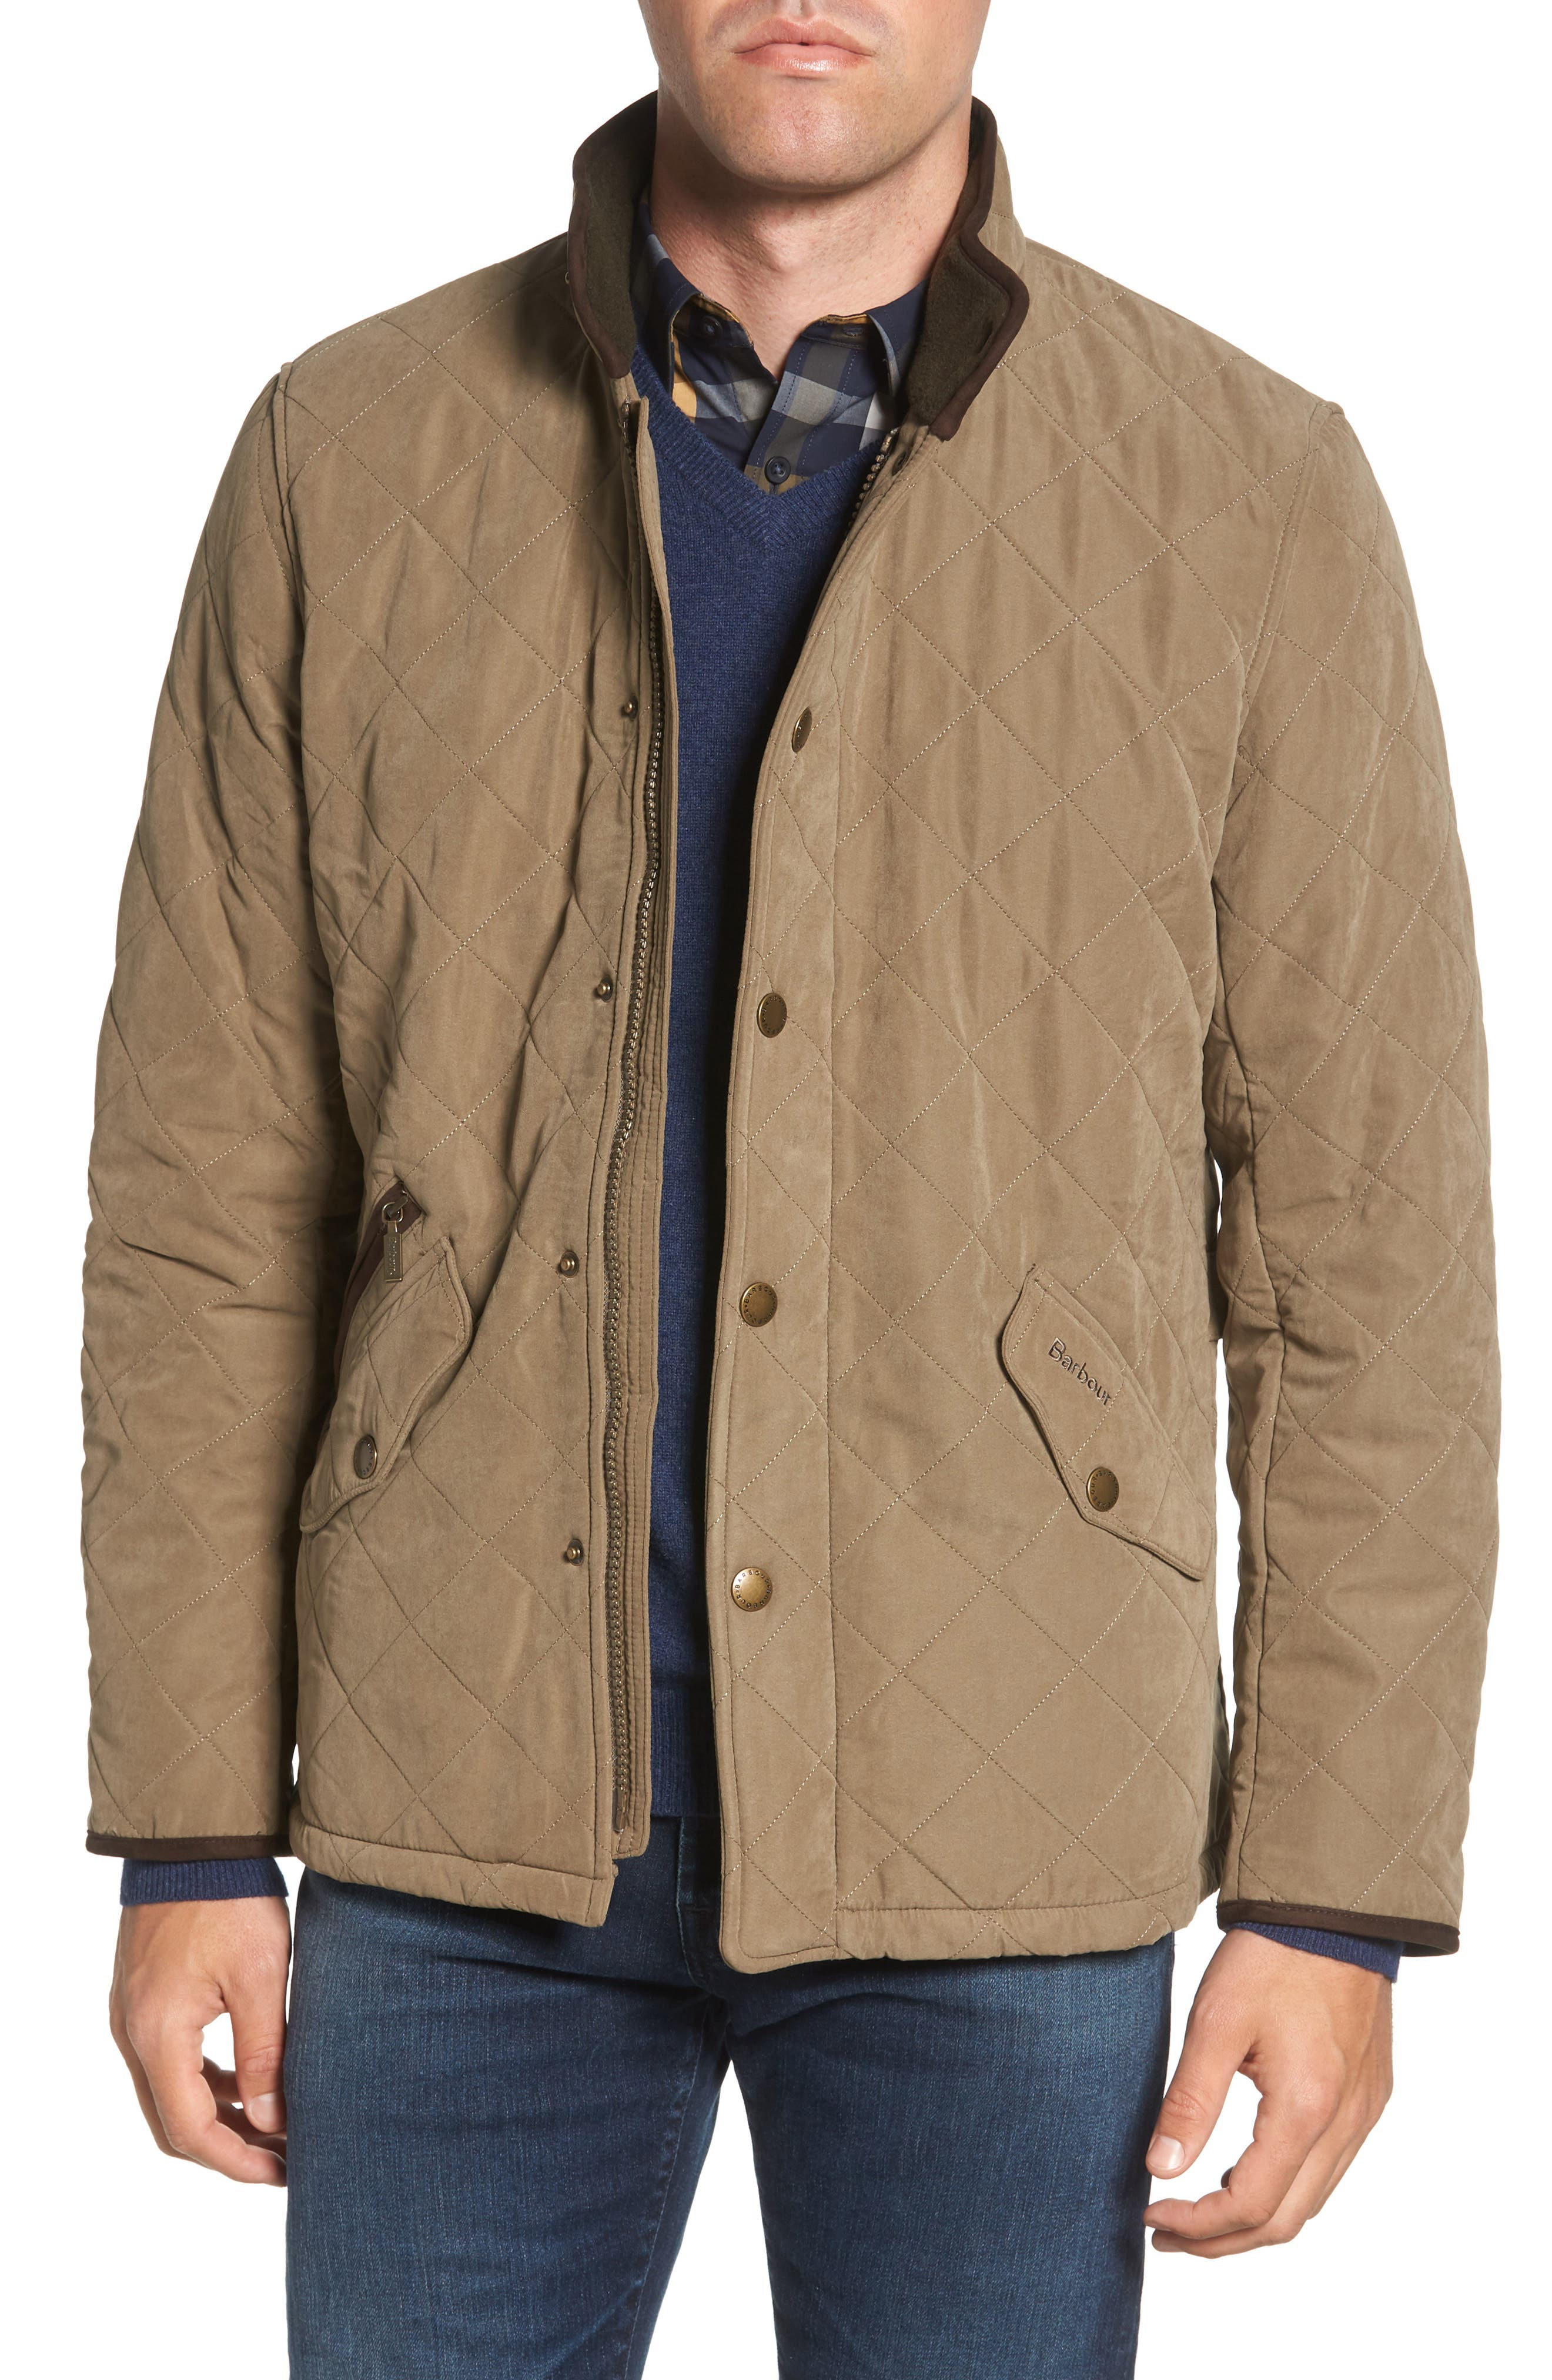 Bowden Quilted Jacket,                             Main thumbnail 1, color,                             LIGHT OLIVE